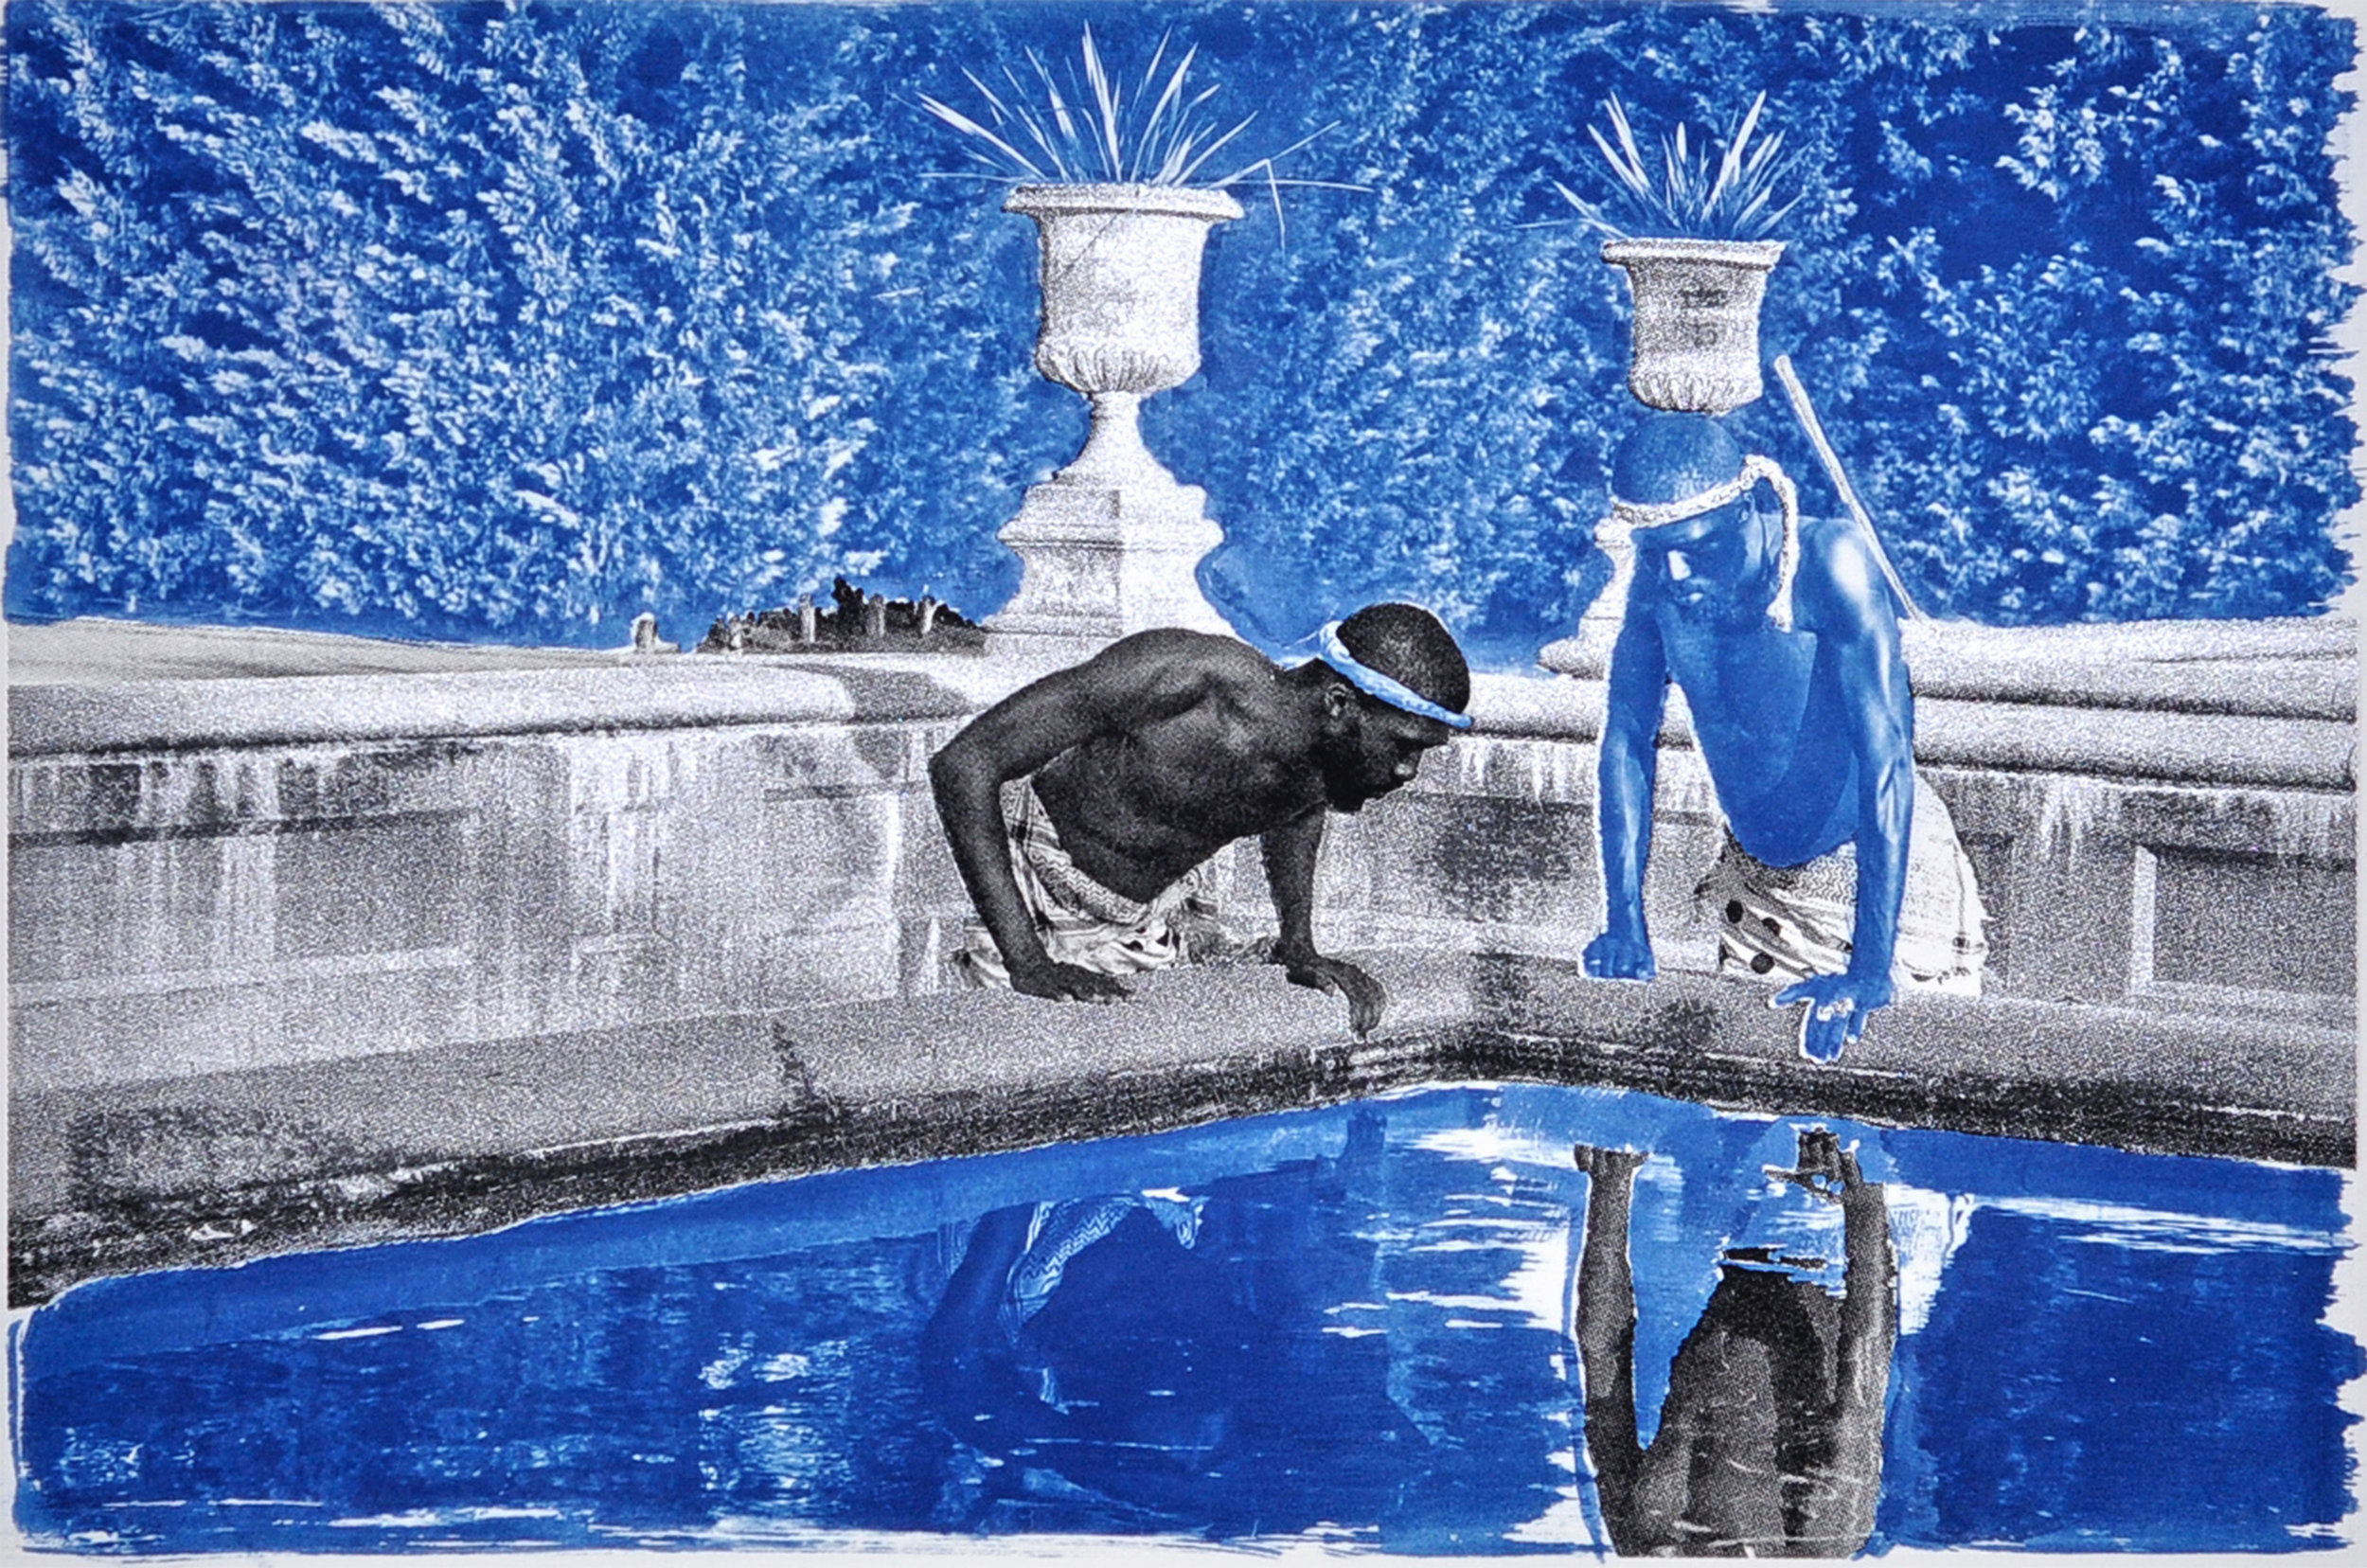 Ivan Forde,  Reflection , 2016  Silkscreen and cyanotype on paper, 12.5 x 18 inches (image size), 22 x 30 inches (paper size), edition of 3; 19 x 29 inches (image size), 22 x 30 inches (paper size), edition of 3   Inquire